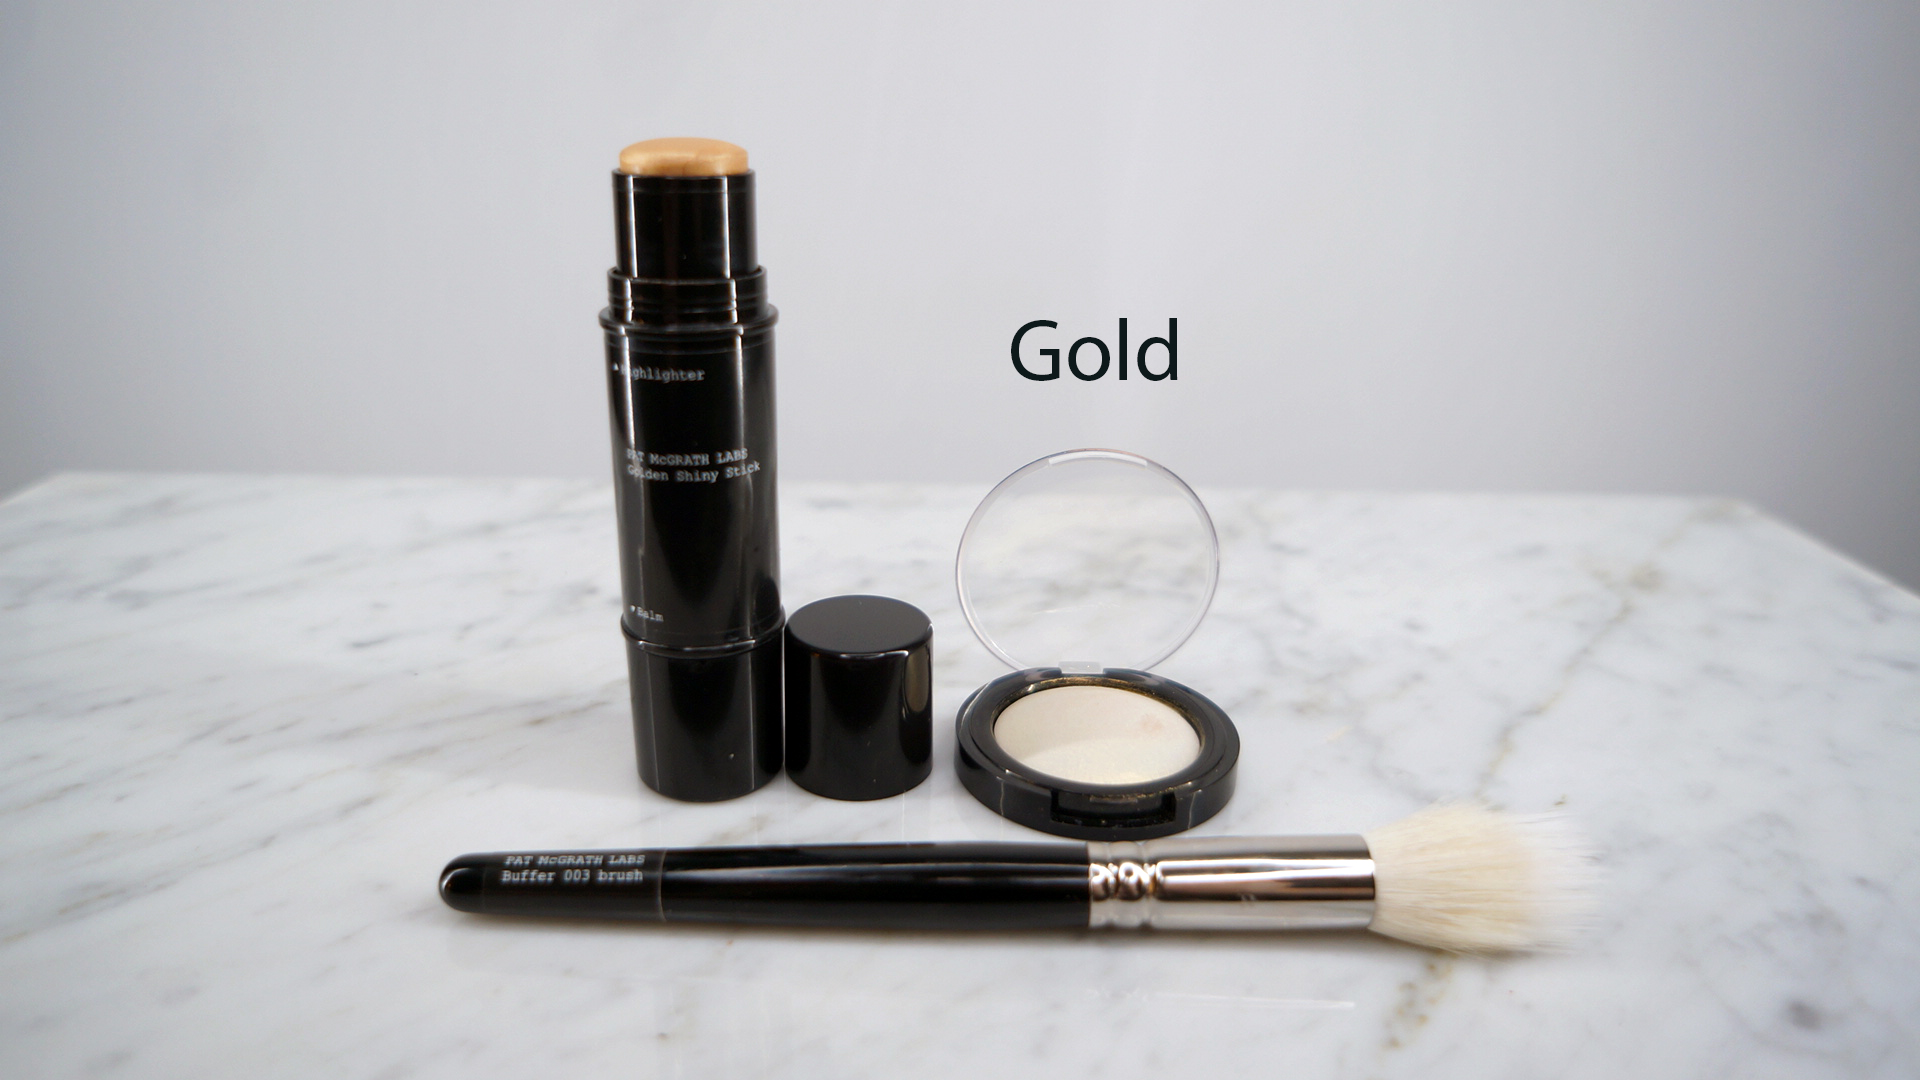 Pat-Mcgrath-skin-fetish-Gold